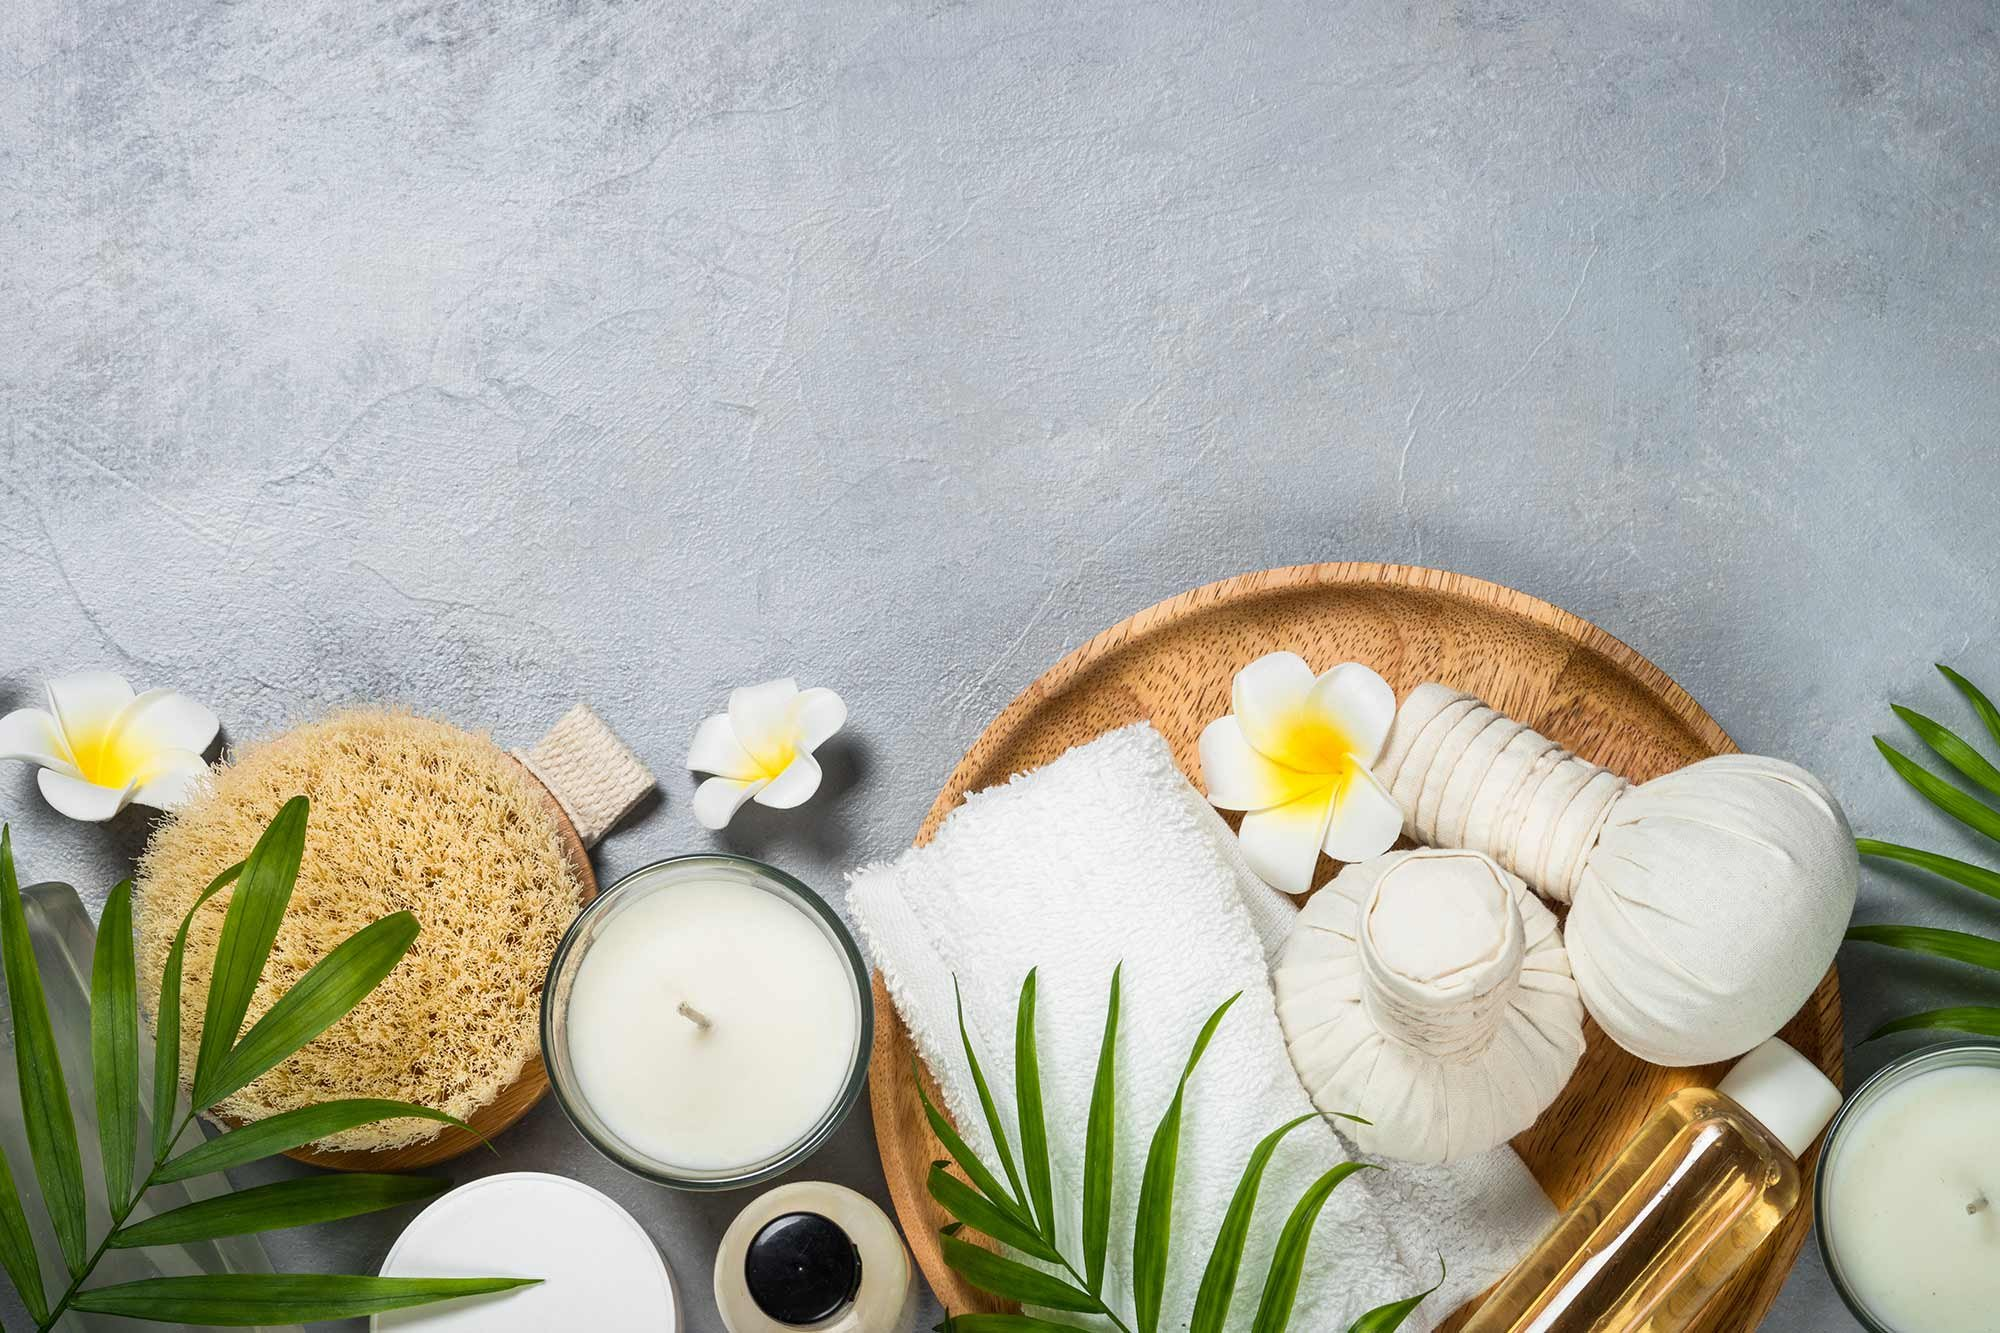 spa materials in basket with flowers